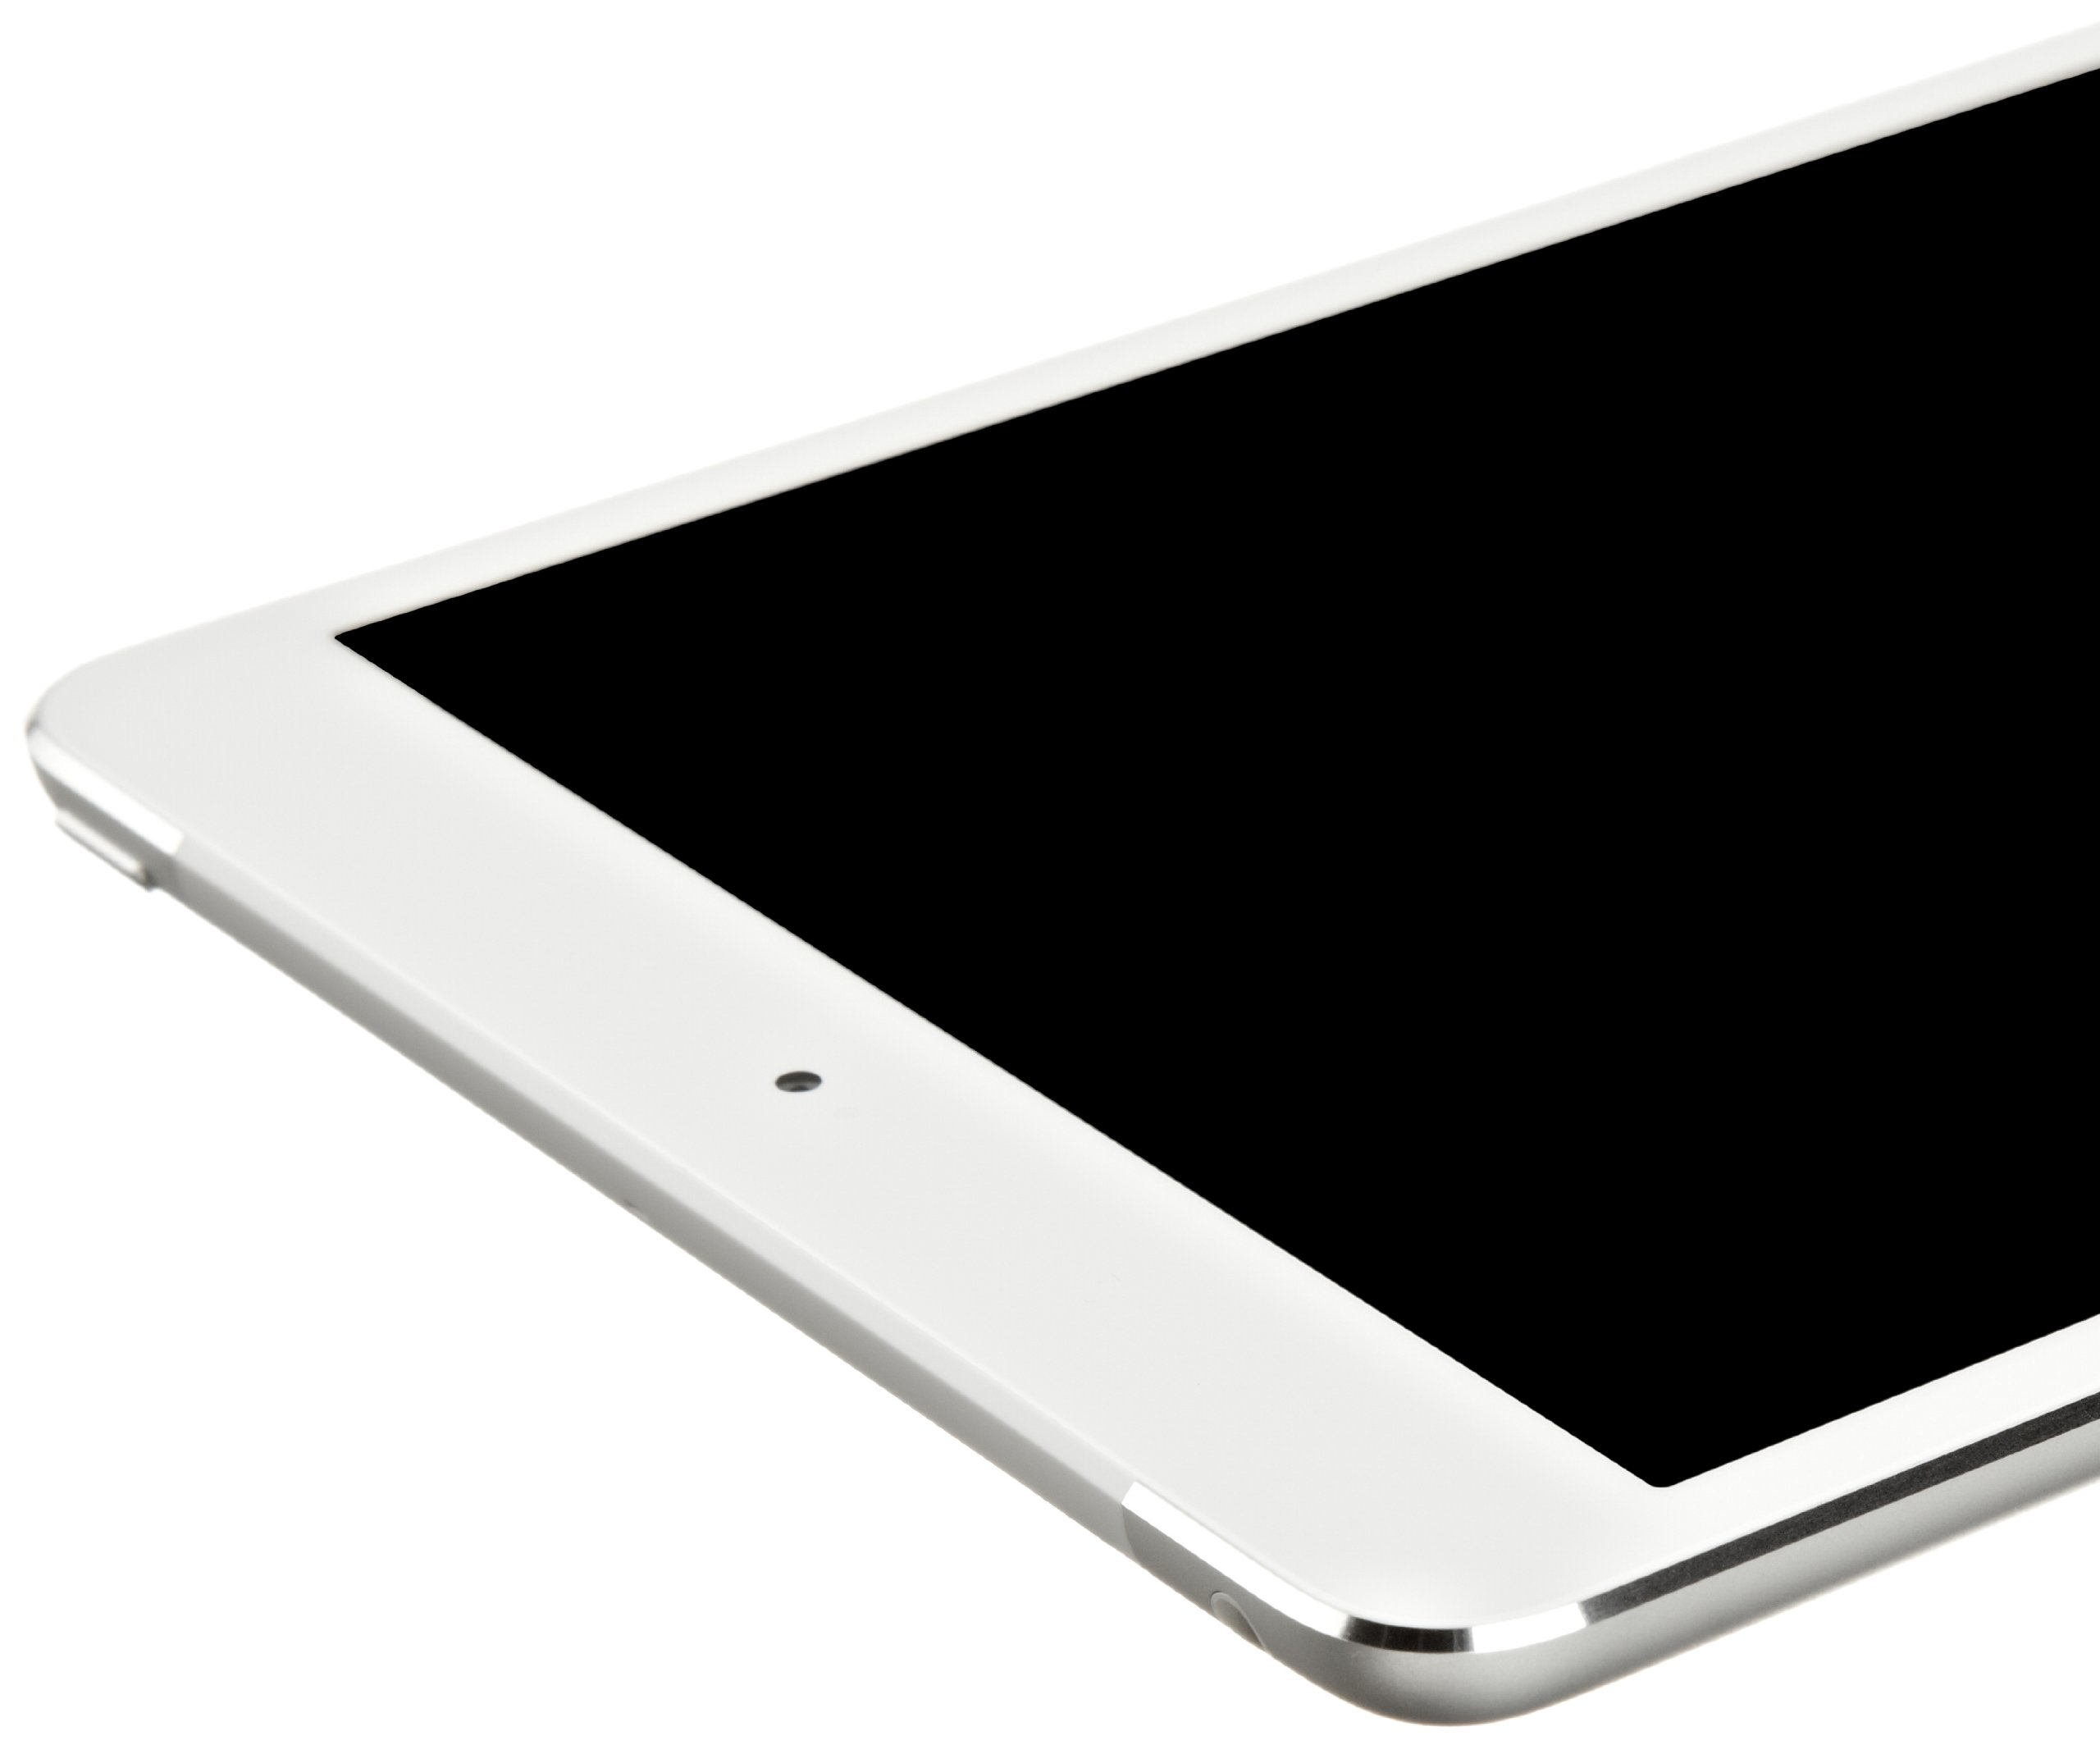 Apple iPad mini 2 with Retina Display MF075LL/A 16GB Memory Wi-Fi  4G LTE Verizon [White With Silver][Old Version] by Apple (Image #3)